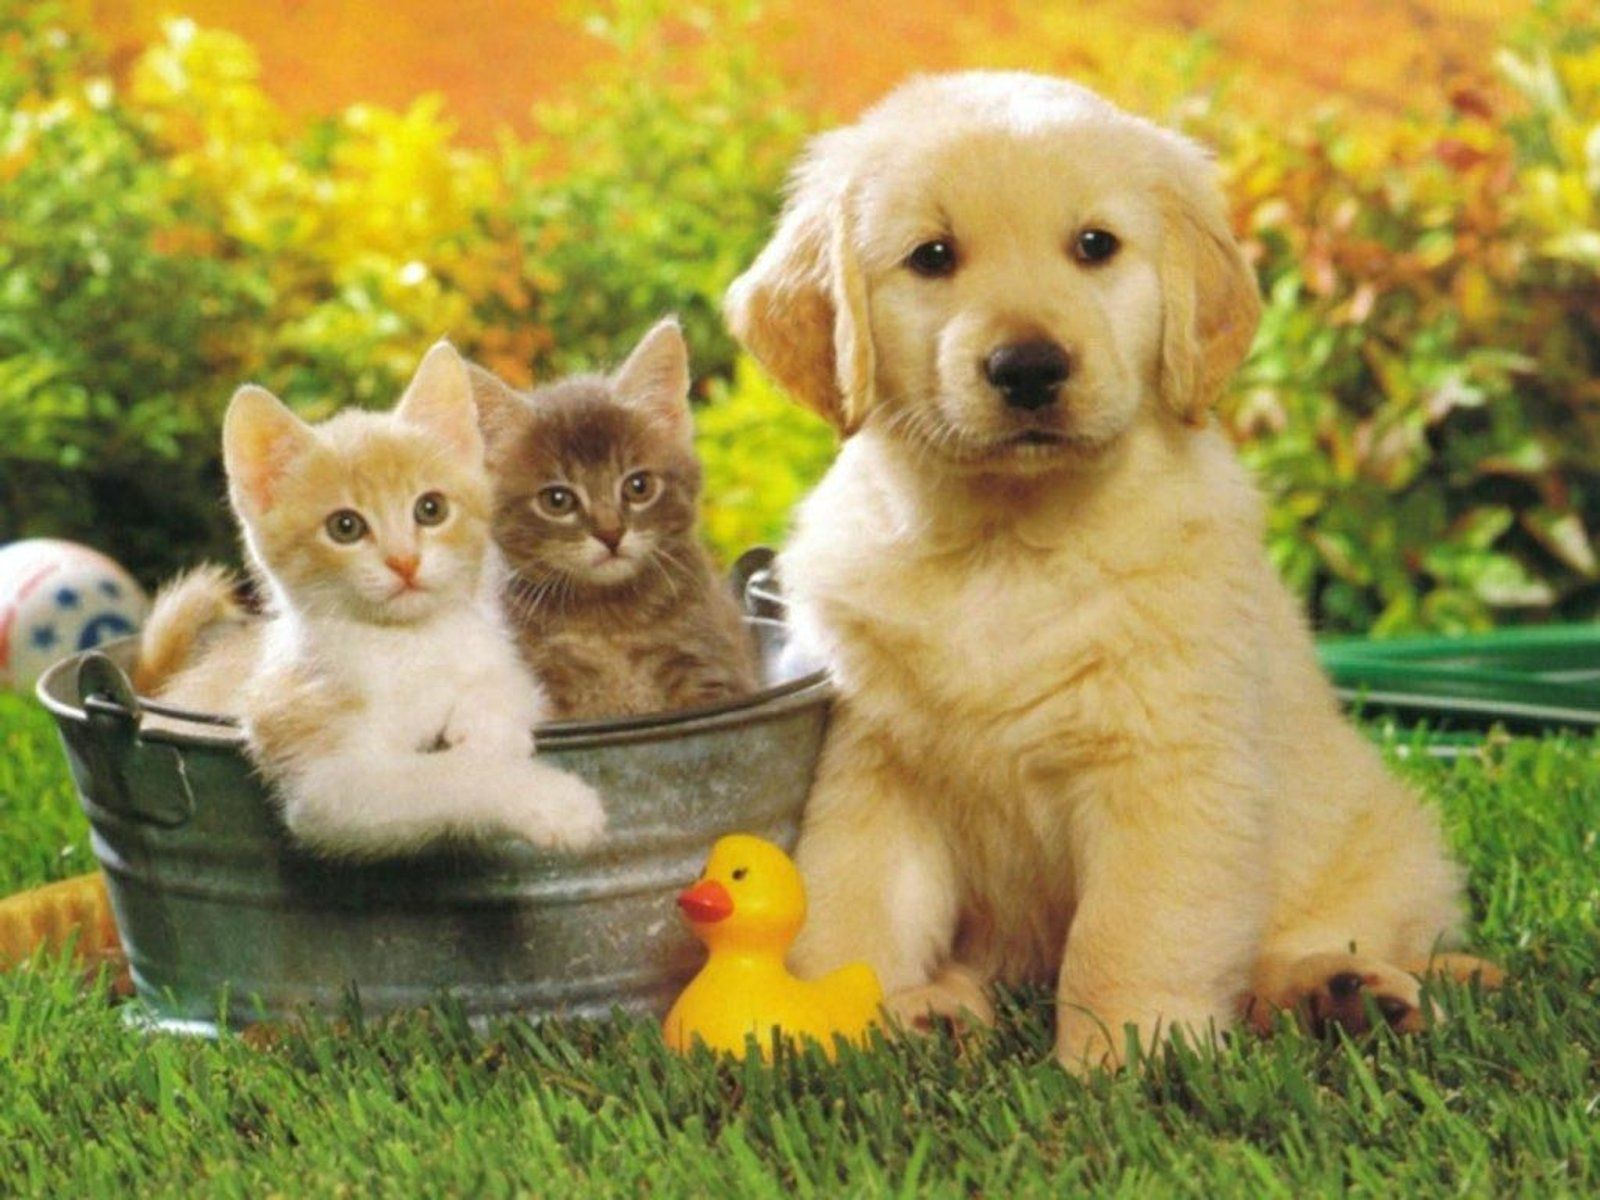 Cute Alert Puppies, Kittens, and Babies Help You Focus picture